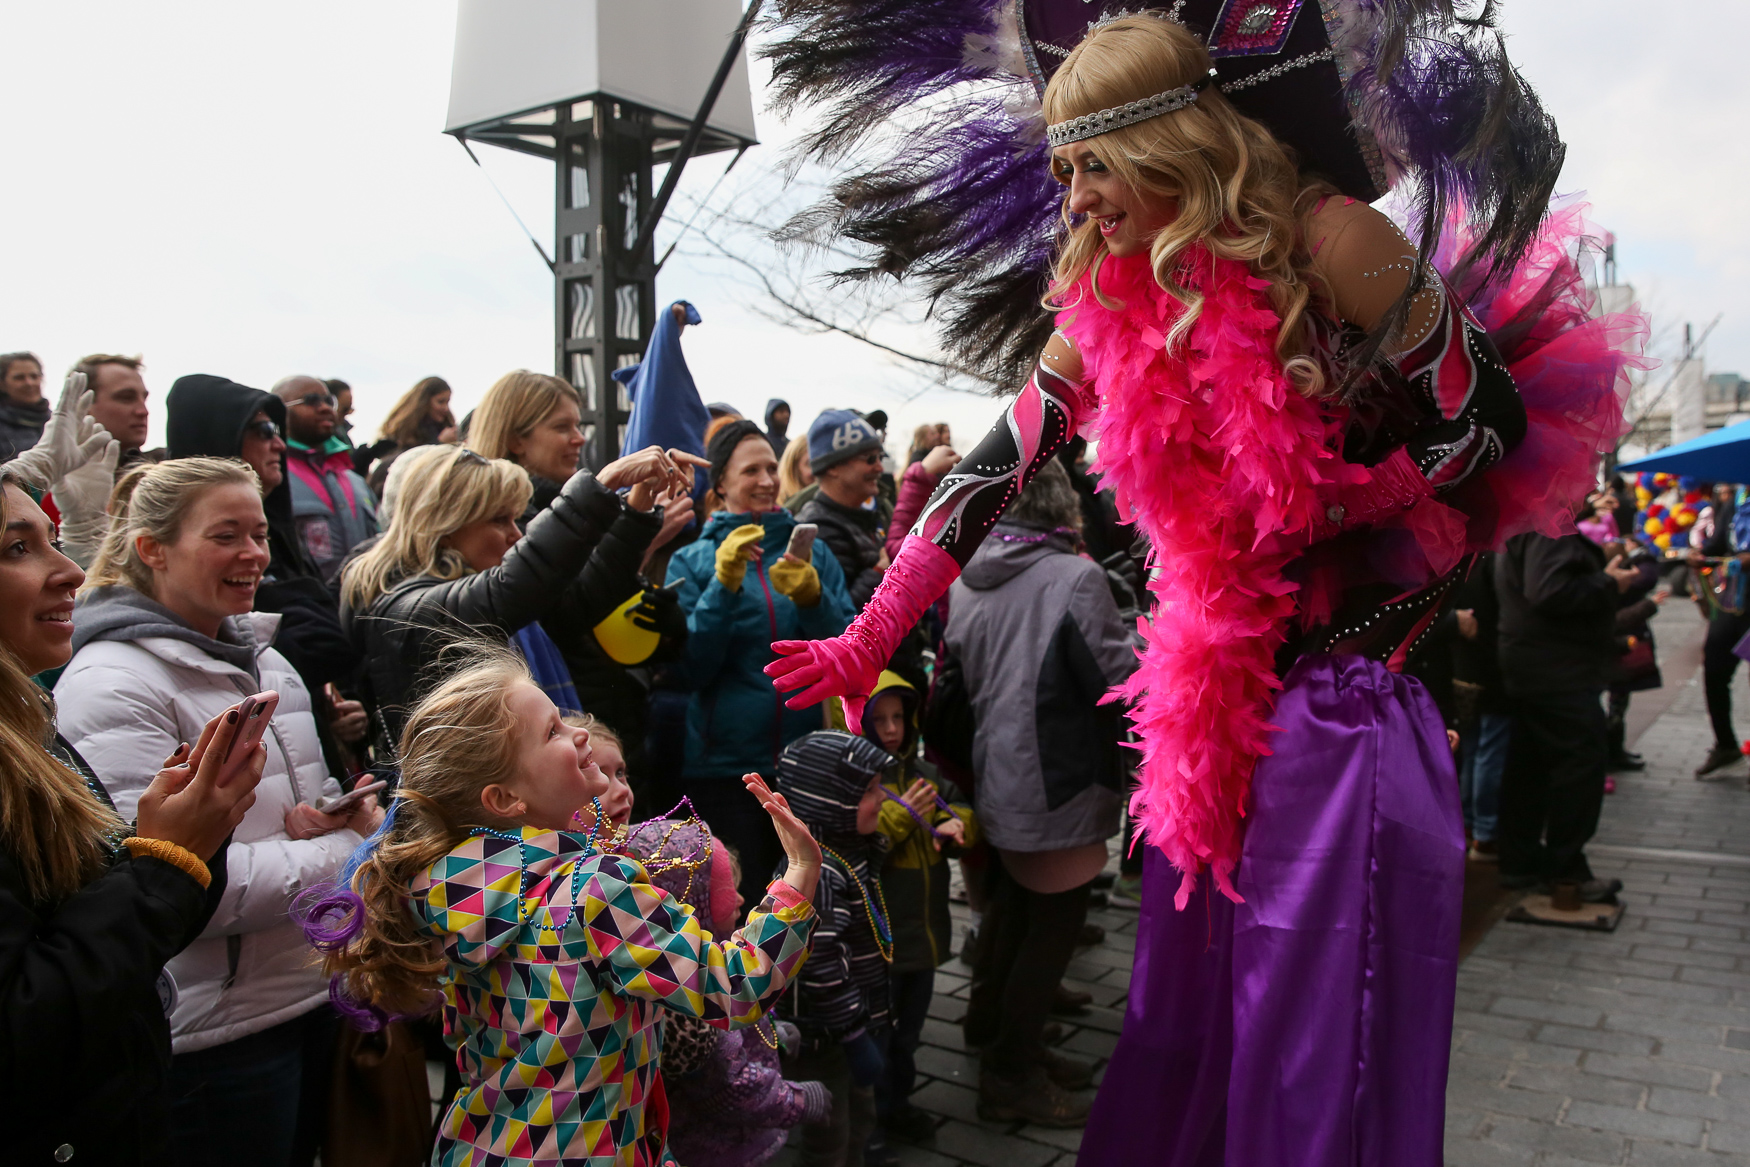 The Big Easy made its way to The Wharf on March 2 for the annual Mardi Gras parade. The acts including marching bands, feather-clad dancers and plenty of beads being thrown around. The parade only lasted a few blocks, but it was a family-friendly event that brought together thousands of people. (Amanda Andrade-Rhoades/DC Refined)